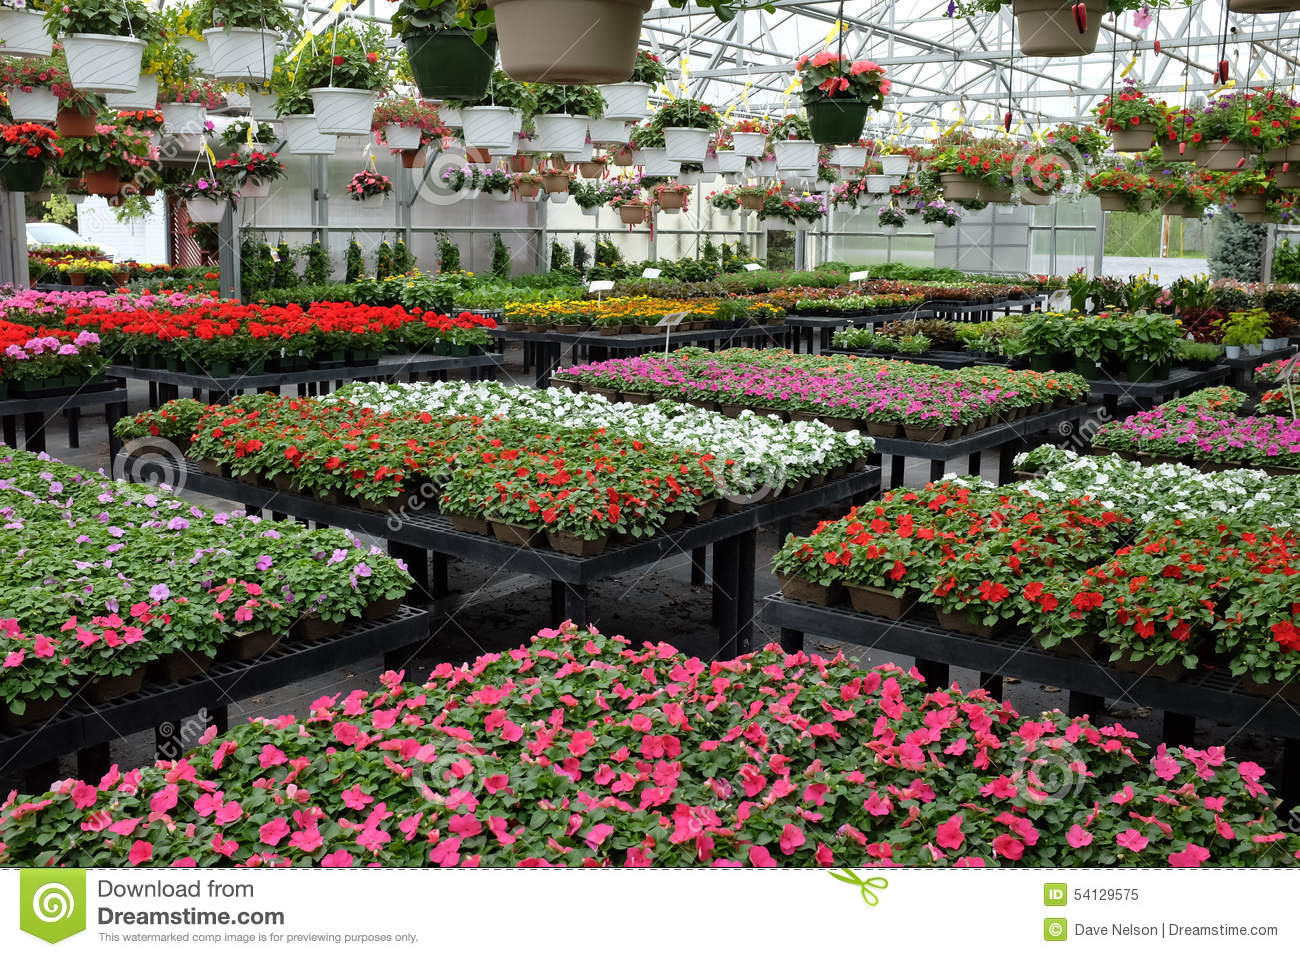 Annual flowers for sale in greenhouse stock image image of annual annual flowers for sale in greenhouse izmirmasajfo Image collections